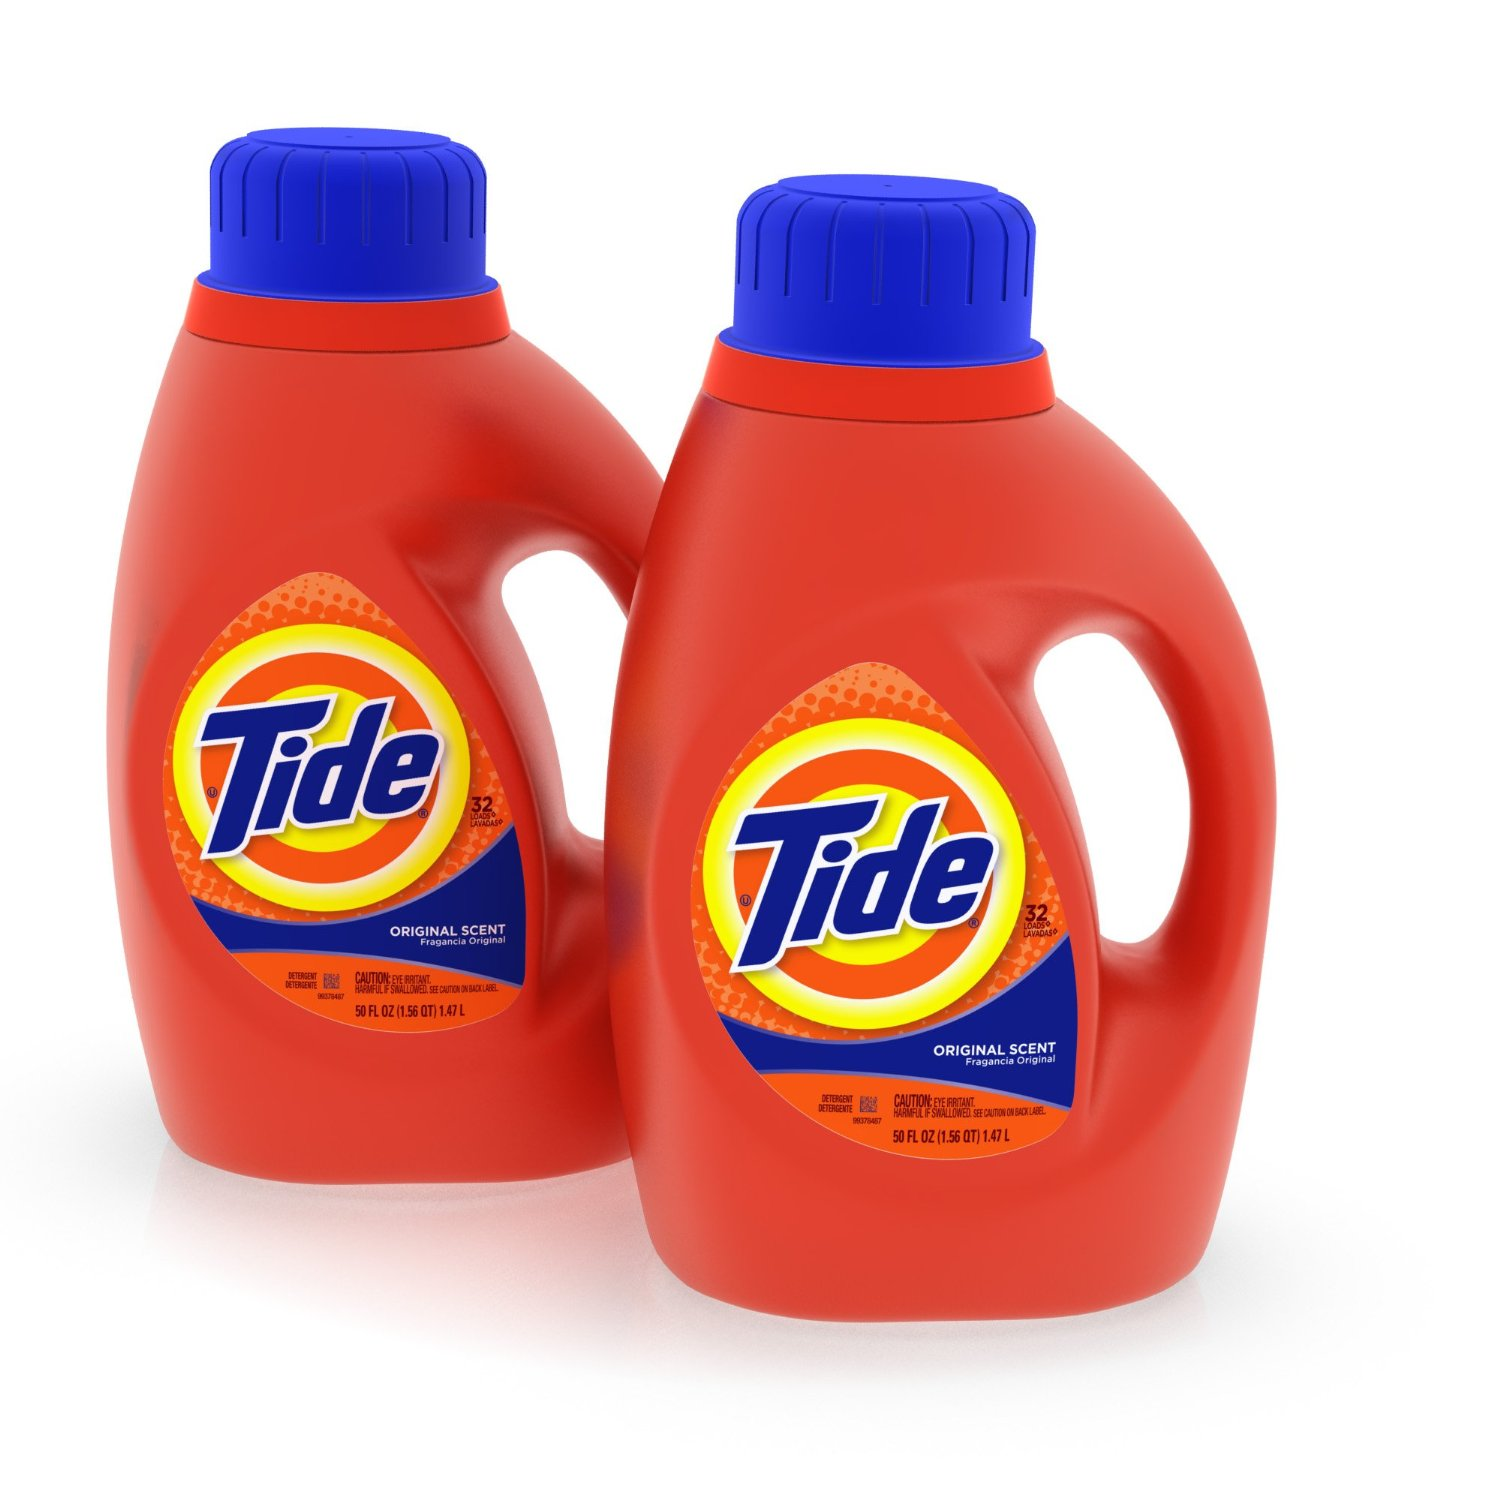 Get 2 50 Oz Bottles Of Tide For 9 90 Shipped Expired Div Div Class Fileinfo 1500 X 1500 Jpeg 147 Kb Div Div Div Div Class Item A Class Thumb Target Blank Href Http Tidbitsandtwine Com Wp Content Uploads 2014 03 Jar For Laundry Soap Jpg H Id Images 5084 1 Div Class Cico Style Width 230px Height 170px Img Height 170 Width 230 Src Http Tse1 Mm Bing Net Th Id Oip Uam6kjntco1 Tm5g2dlzkqhae7 Amp W 230 Amp H 170 Amp Rs 1 Amp Pcl Dddddd Amp O 5 Amp Pid 1 1 Alt Div A Div Class Meta A Class Tit Target Blank Href Http Www Tidbitsandtwine Com Learning Love Laundry Room H Id Images 5082 1 Www Tidbitsandtwine Com A Div Class Des Learning To Love My Small Laundry Room